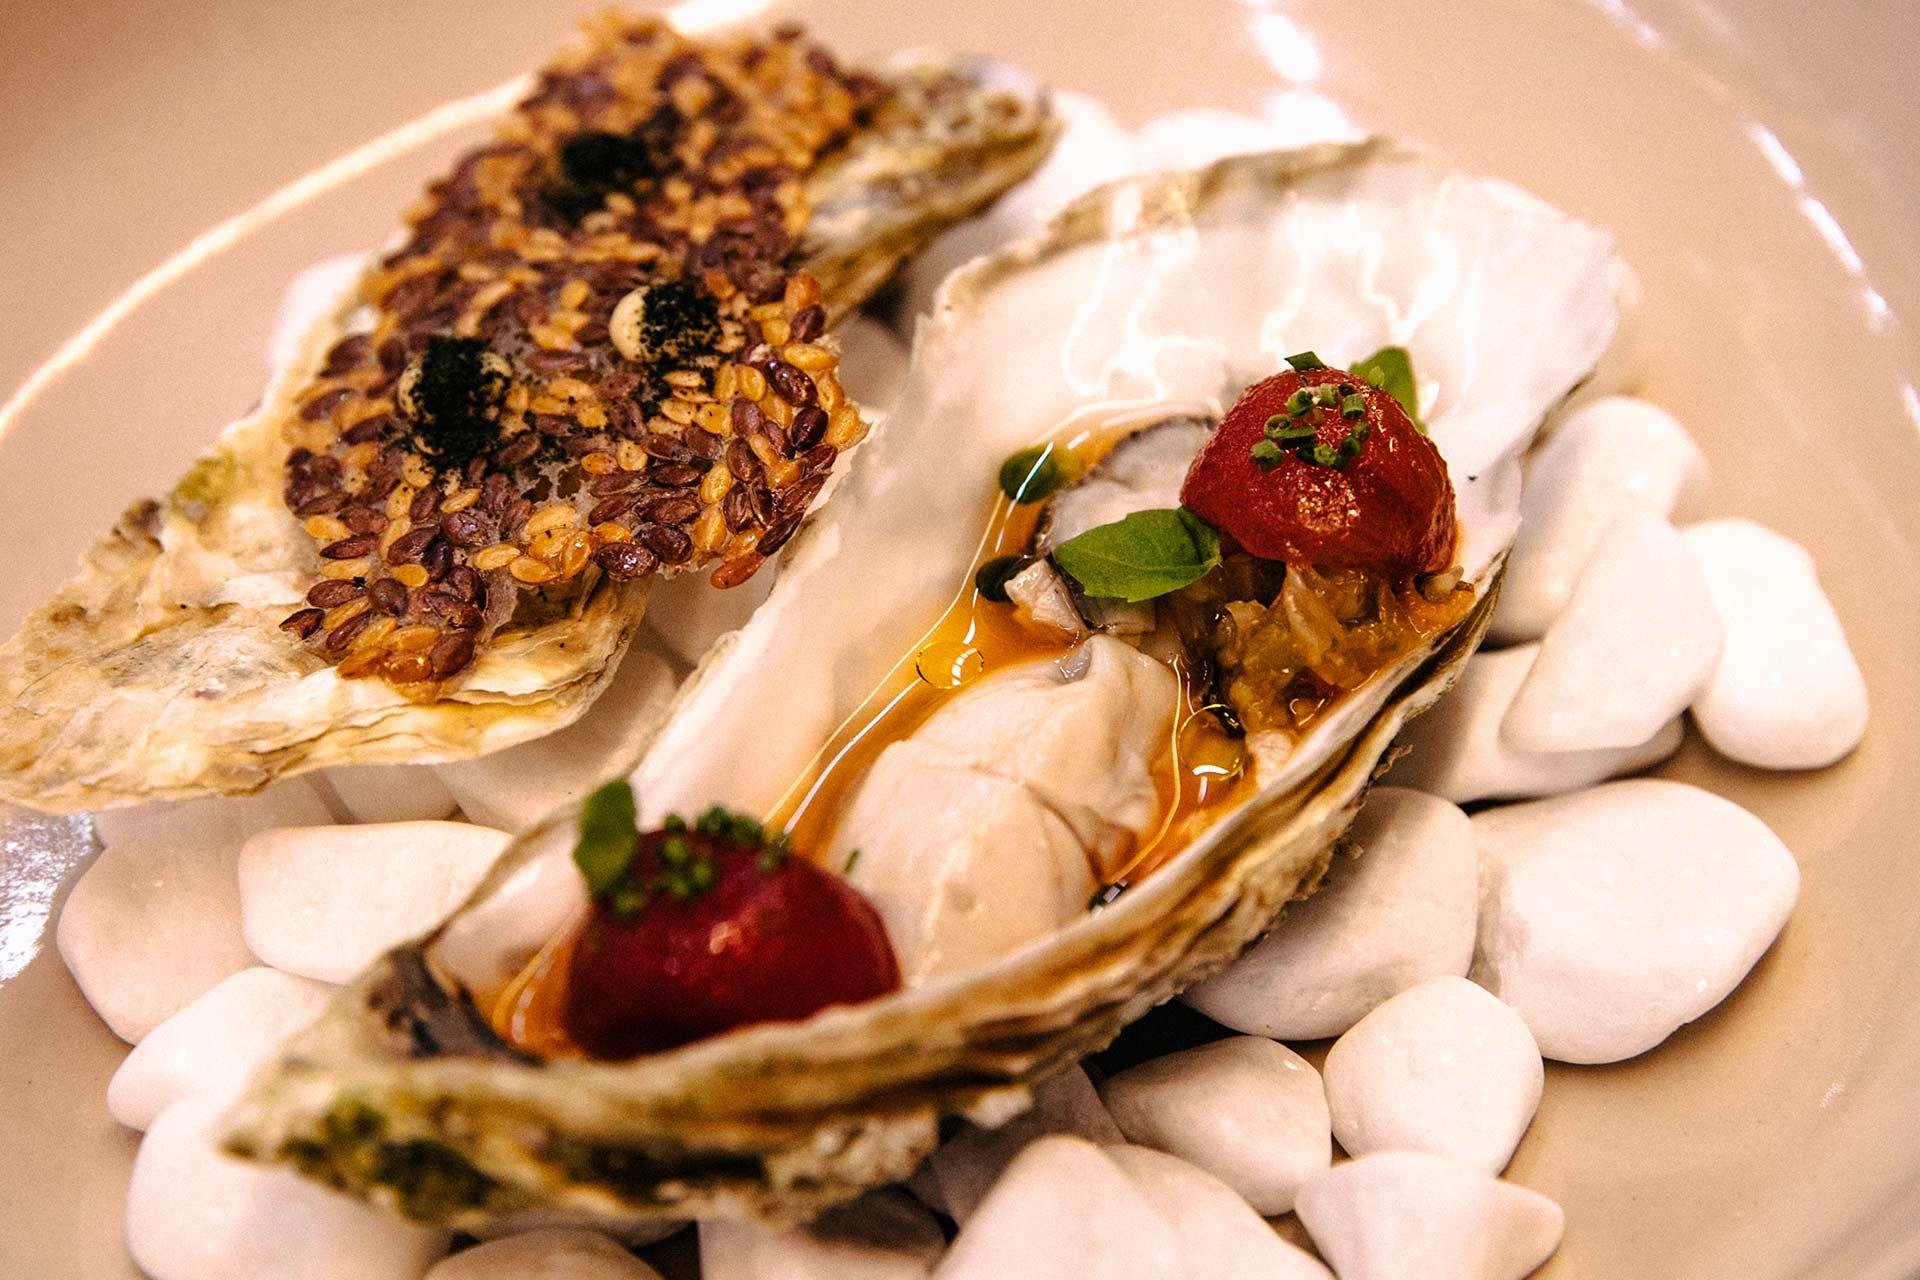 31_oyster _ Kim-chi tomato_flaxseed chips _ mussel emulsion